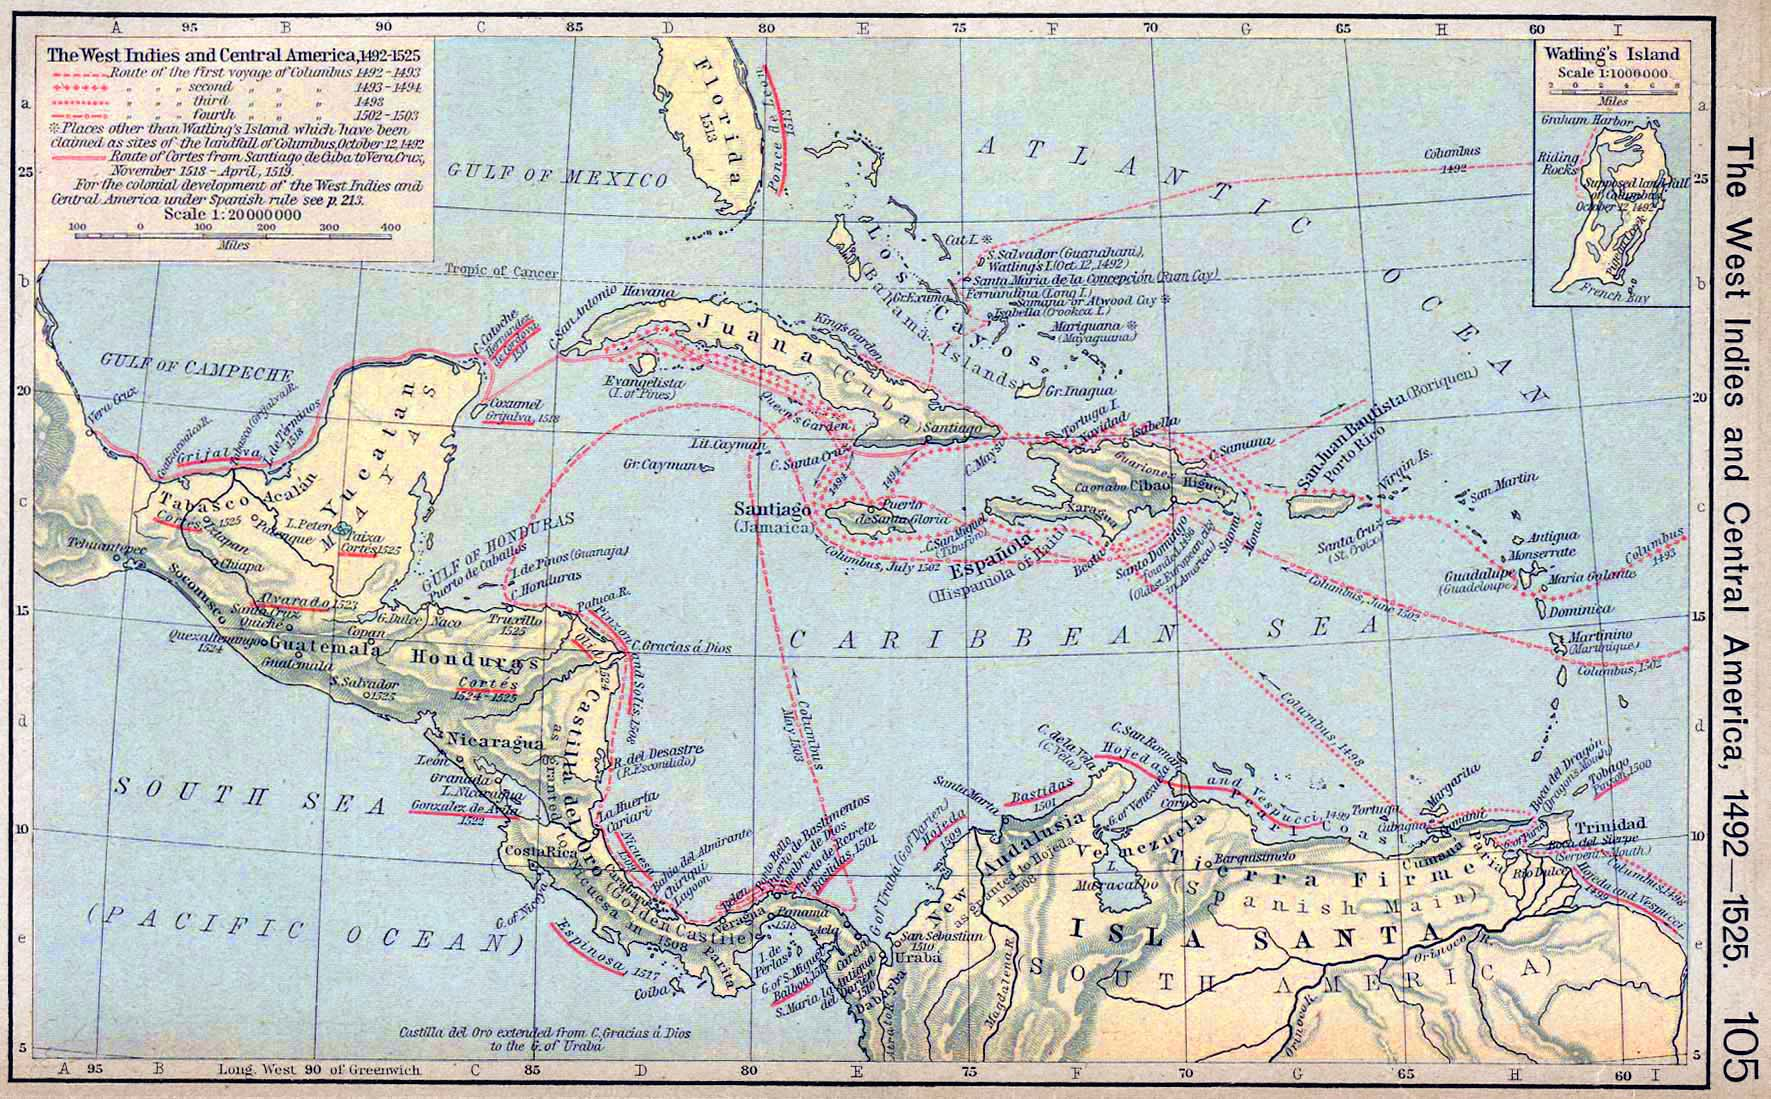 map of the west indies and central america 1492 1525